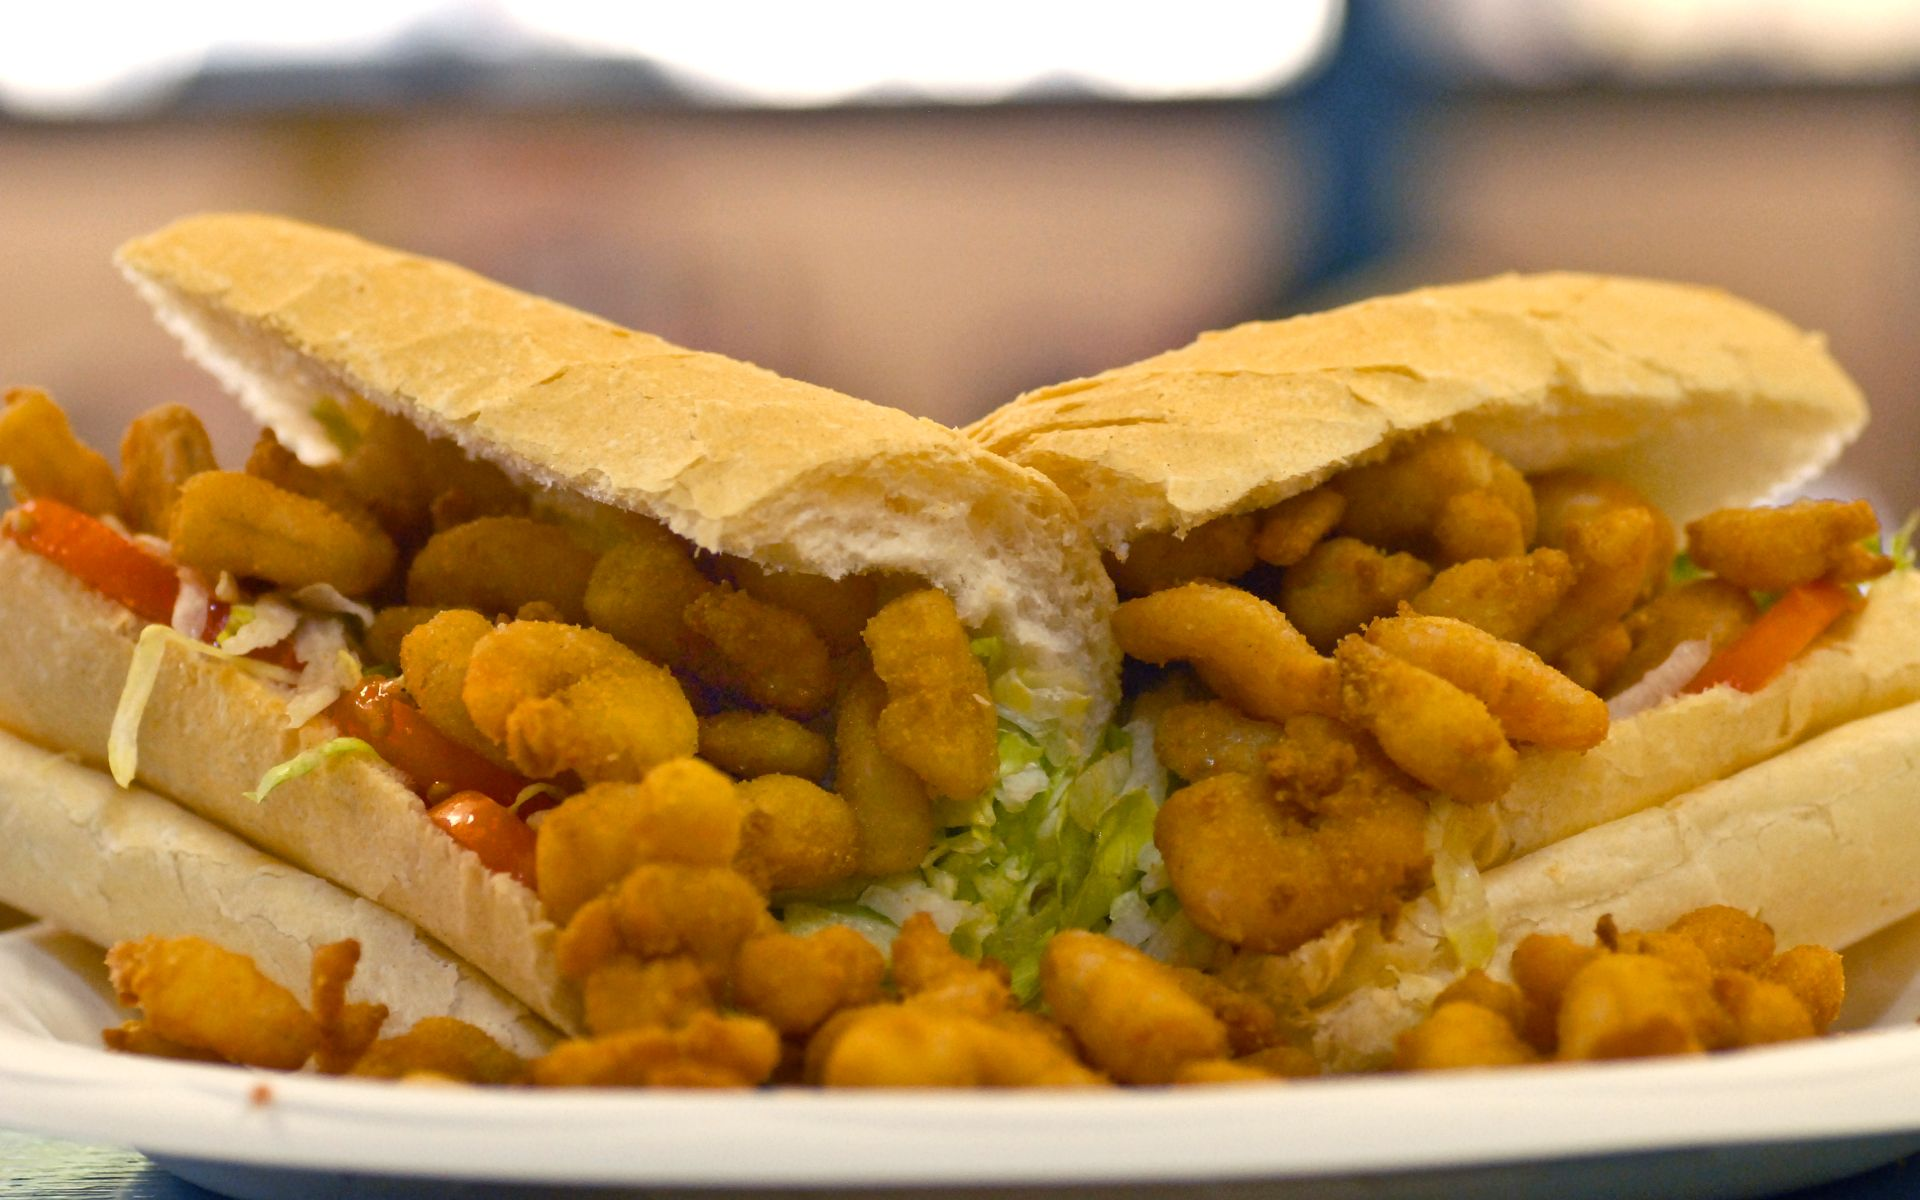 Fried shrimp poboy with lettuce and tomato